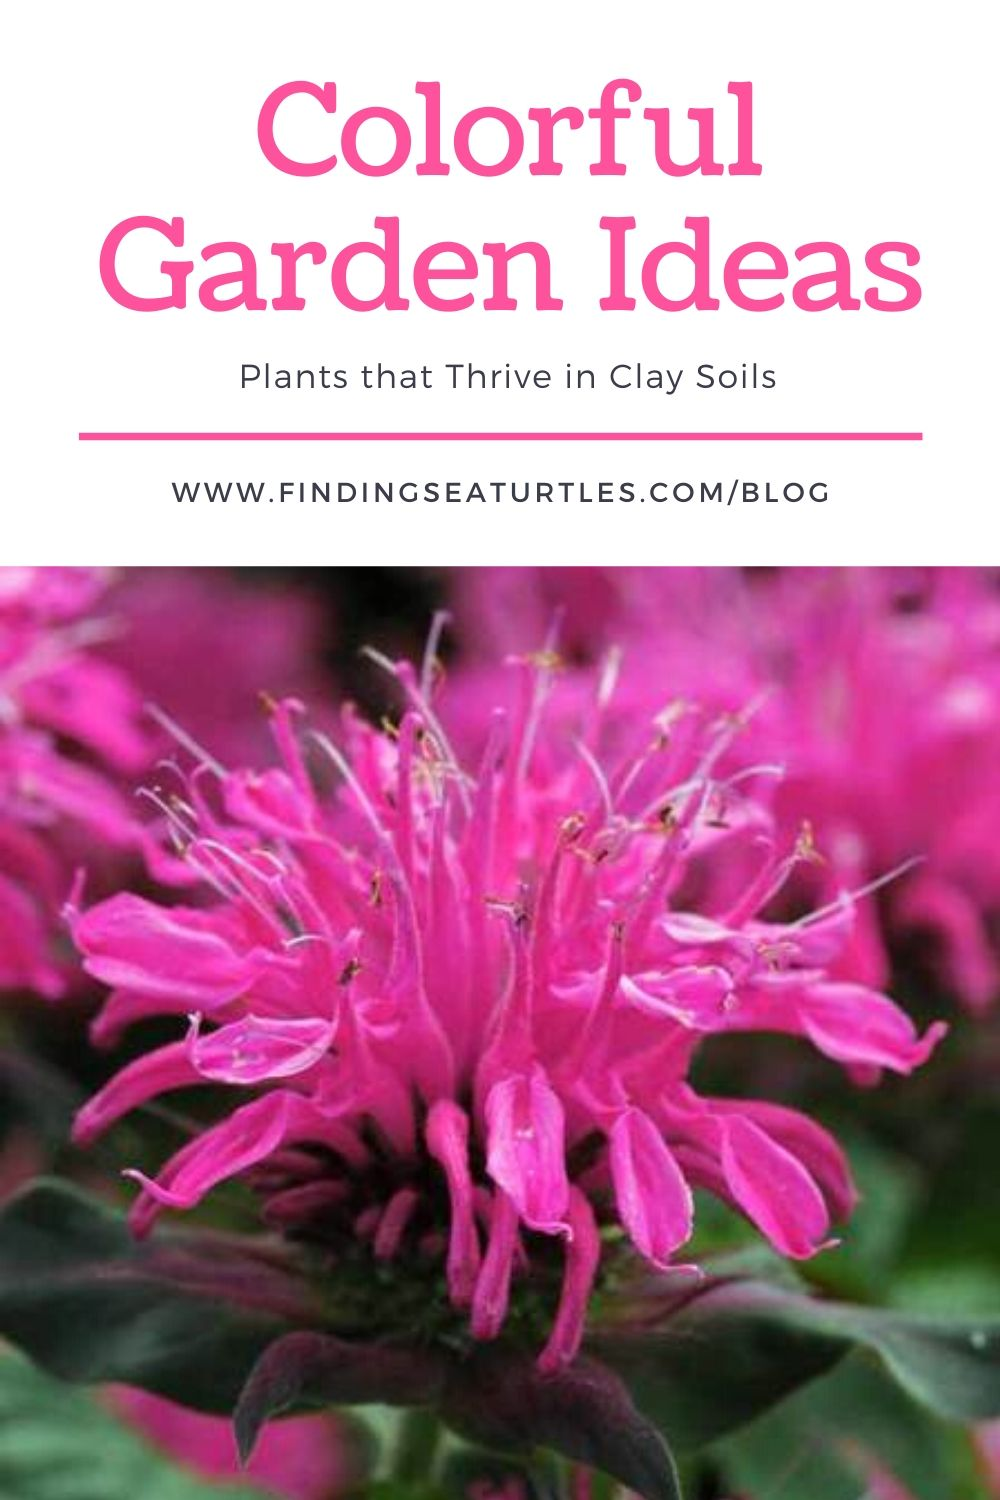 COLORFUL Garden Ideas Plants that Thrive in Clay Soils #Perennials #ClayTolerantPerennials #PlantsThatThriveinClay #Gardening #ClaySoil #TolerantofClaySoils